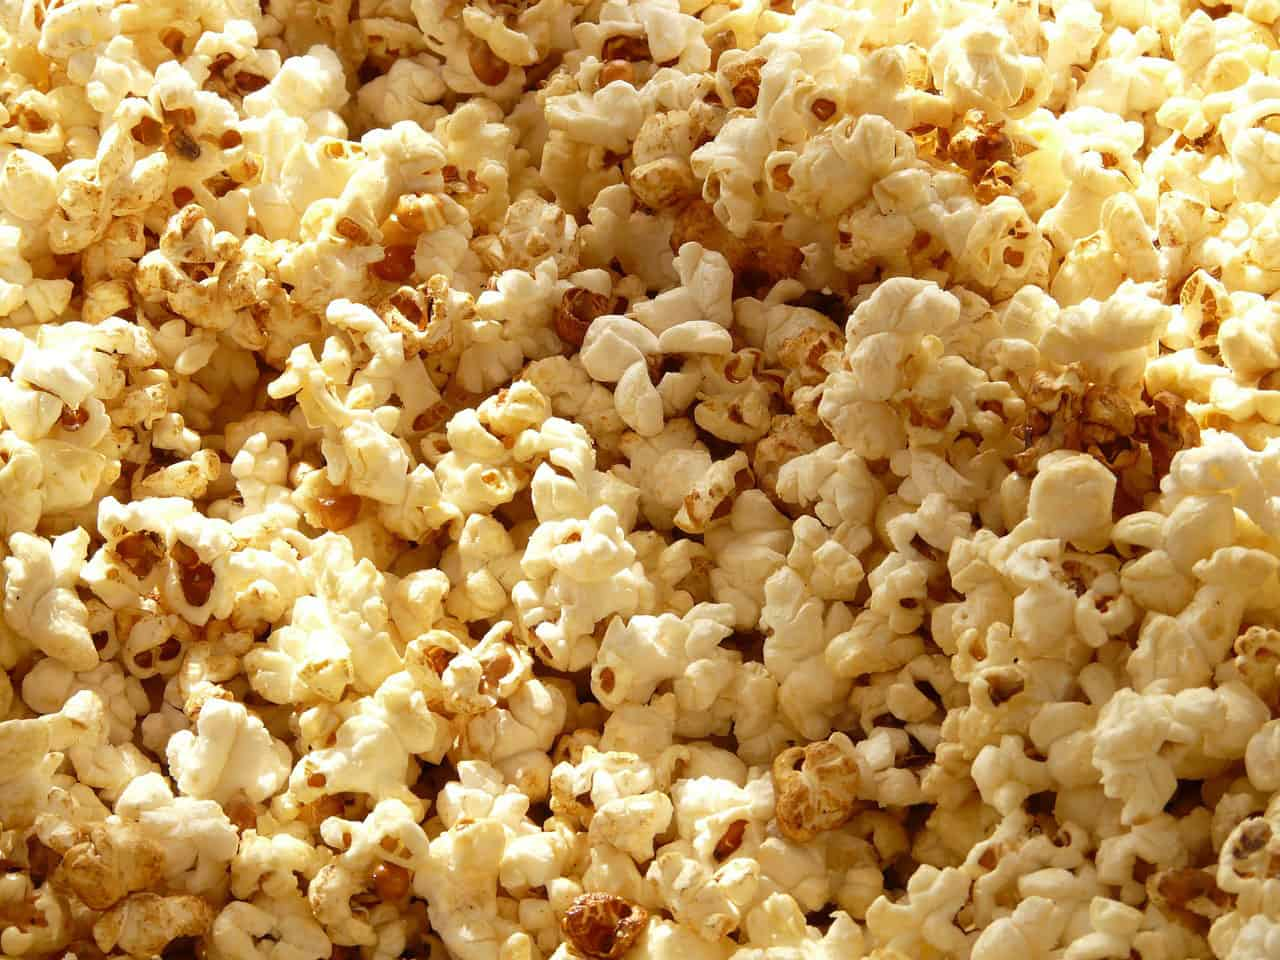 What do you get when you combine butter, bacon, popcorn and salt?